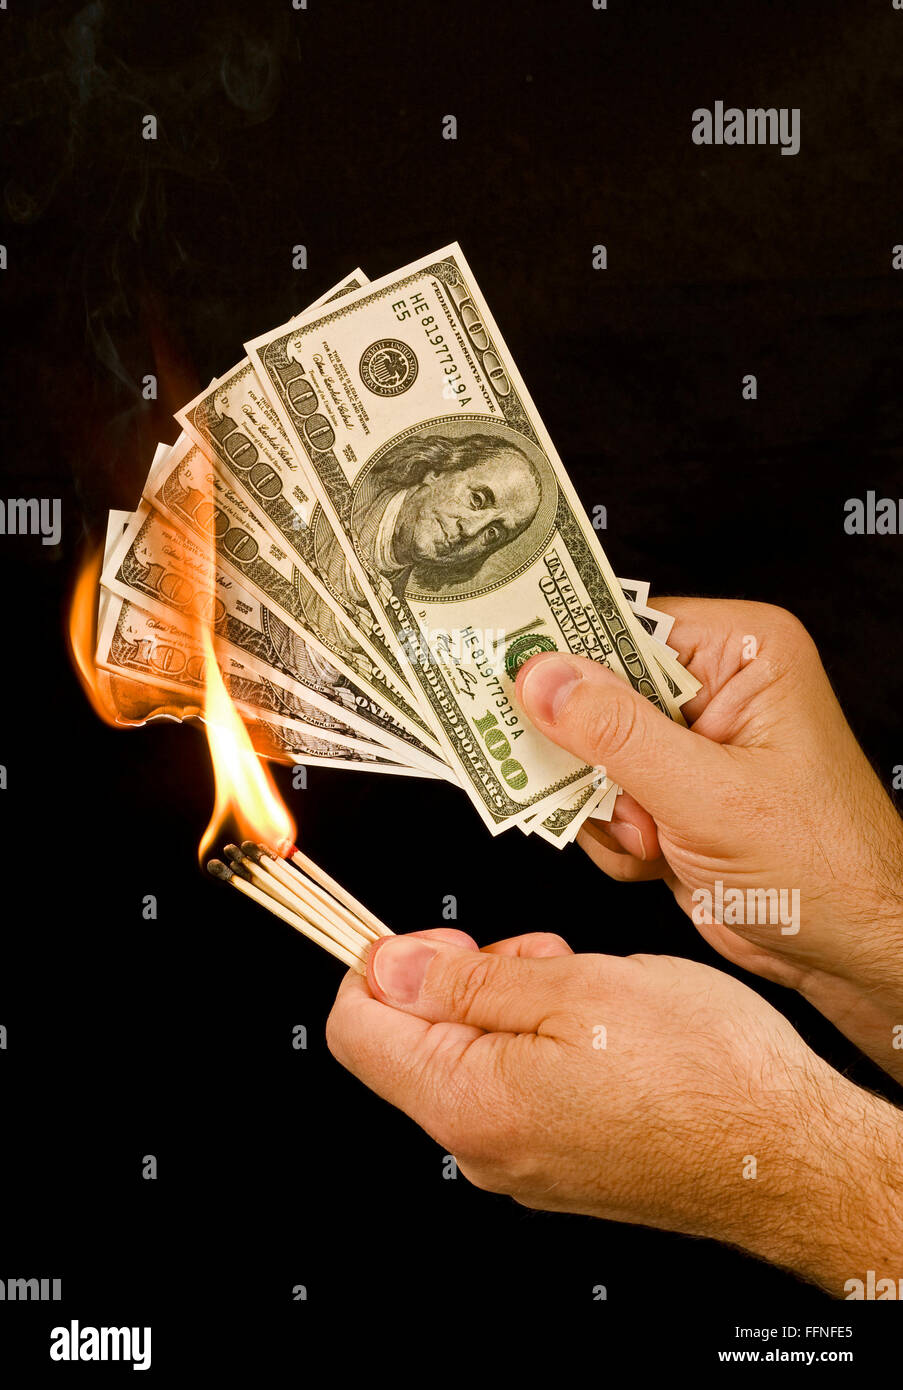 Money to Burn 1.  A man uses matches to set fire to a group of one hundred dollar bills. - Stock Image